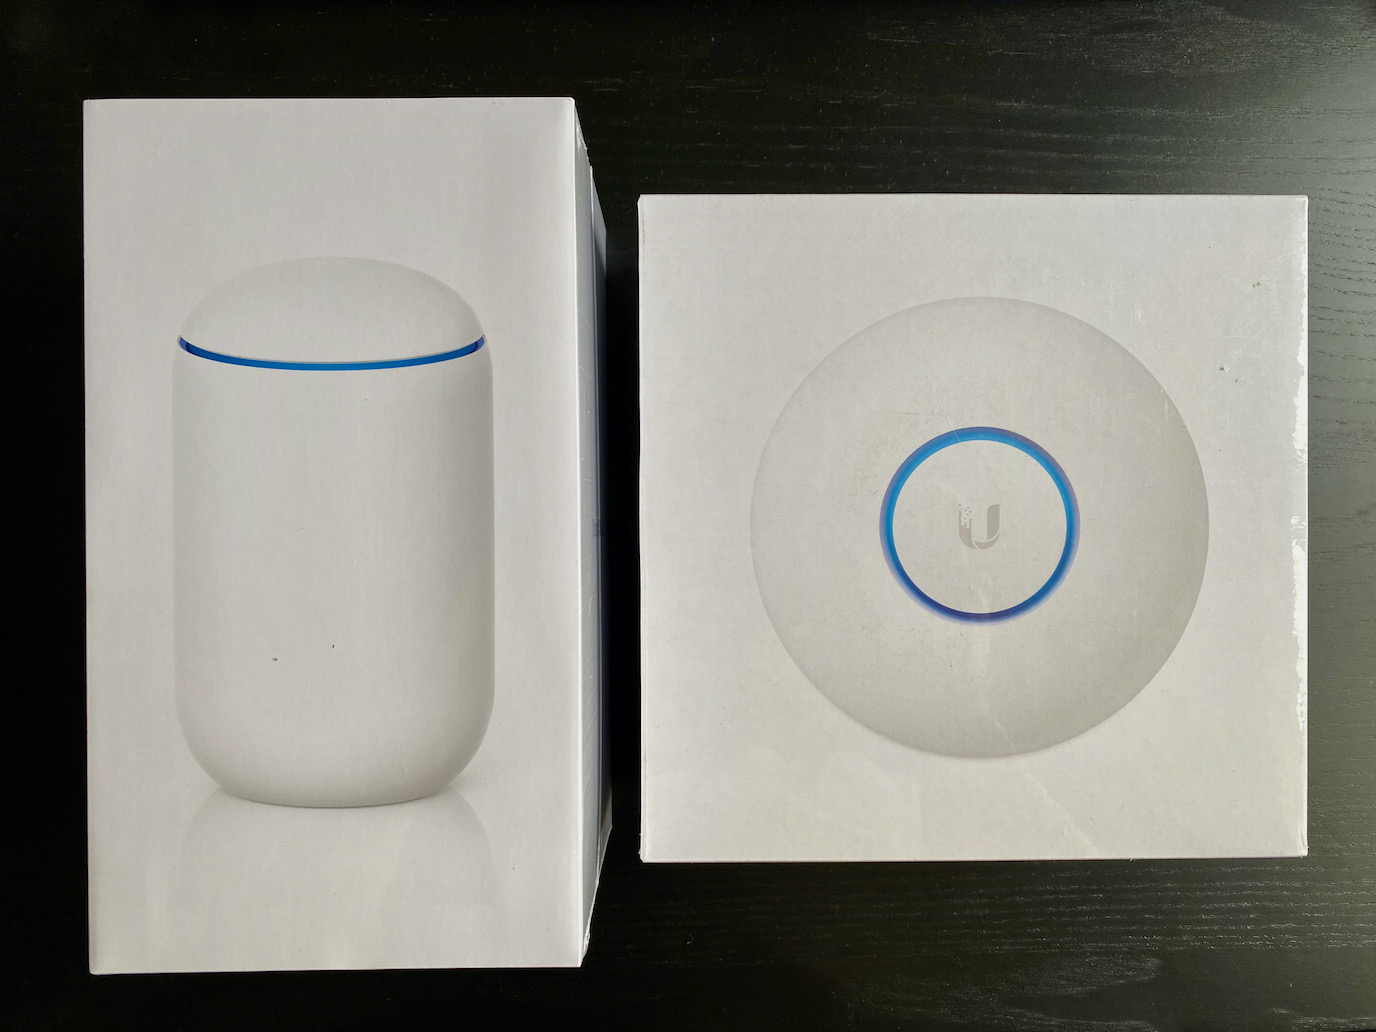 Unifi Dream Machine and NanoHD